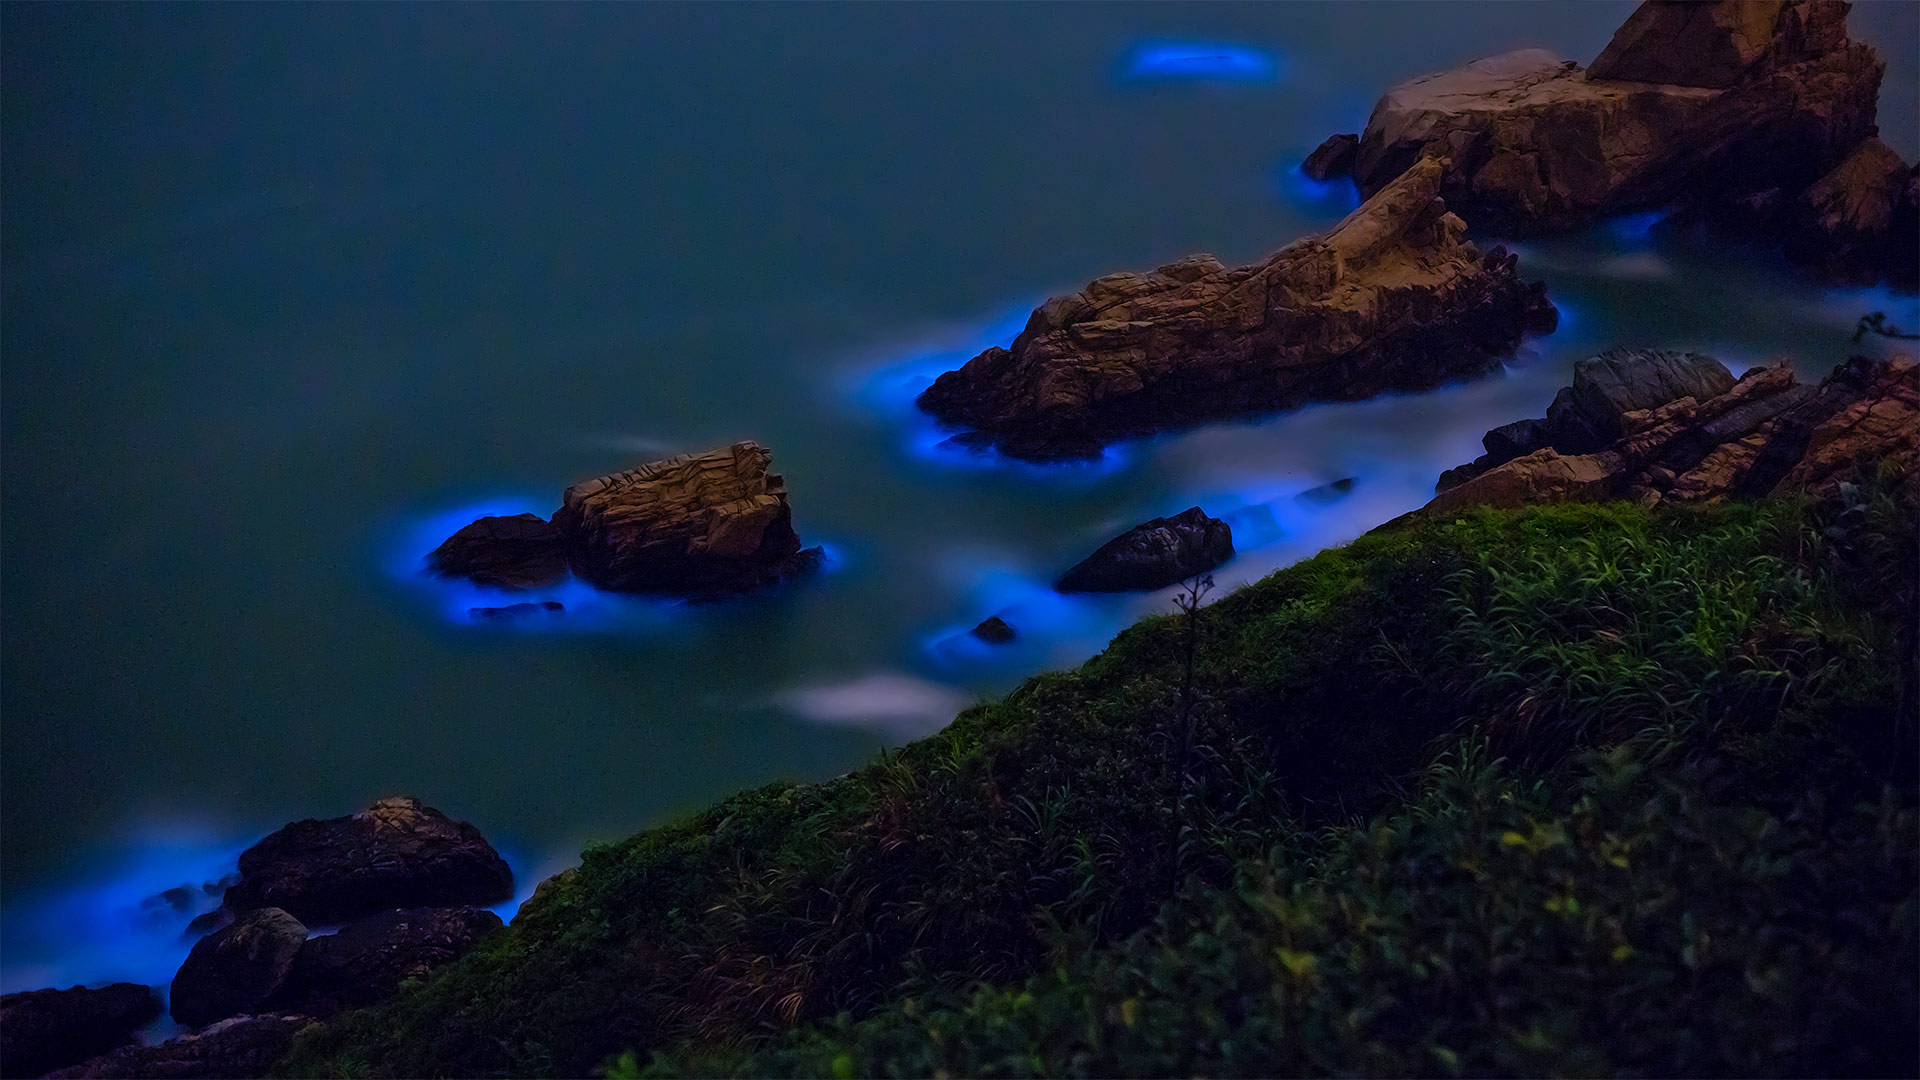 Bioluminescent algae along the shores of the Matsu Islands off the coast of Taiwan (© Wan Ru Chen/Getty Images)(Bing United States)